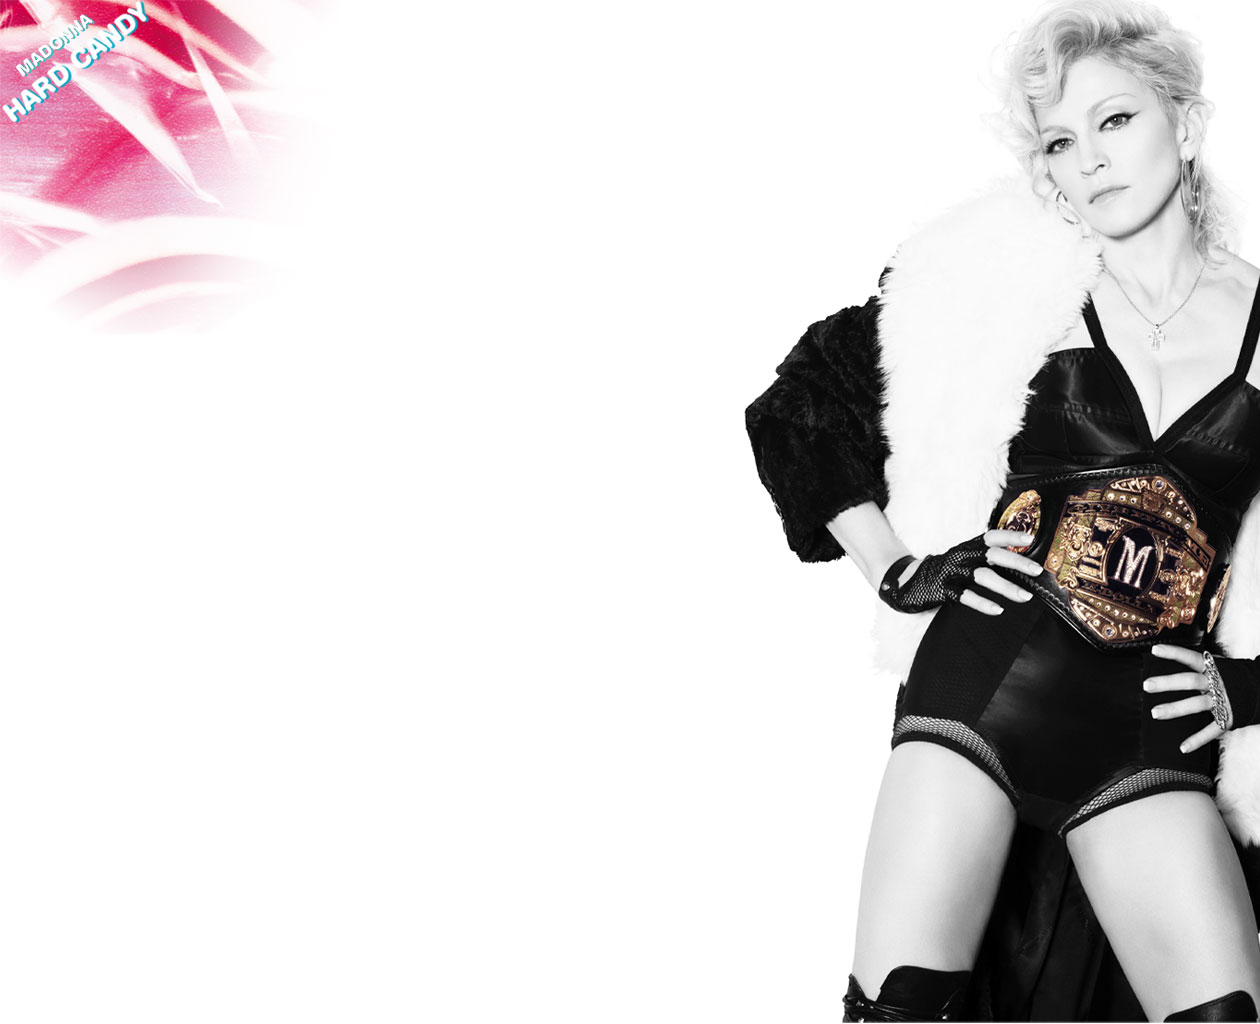 XP wallpaper PC wallpaper Madonna Hard Candy 1260x1024